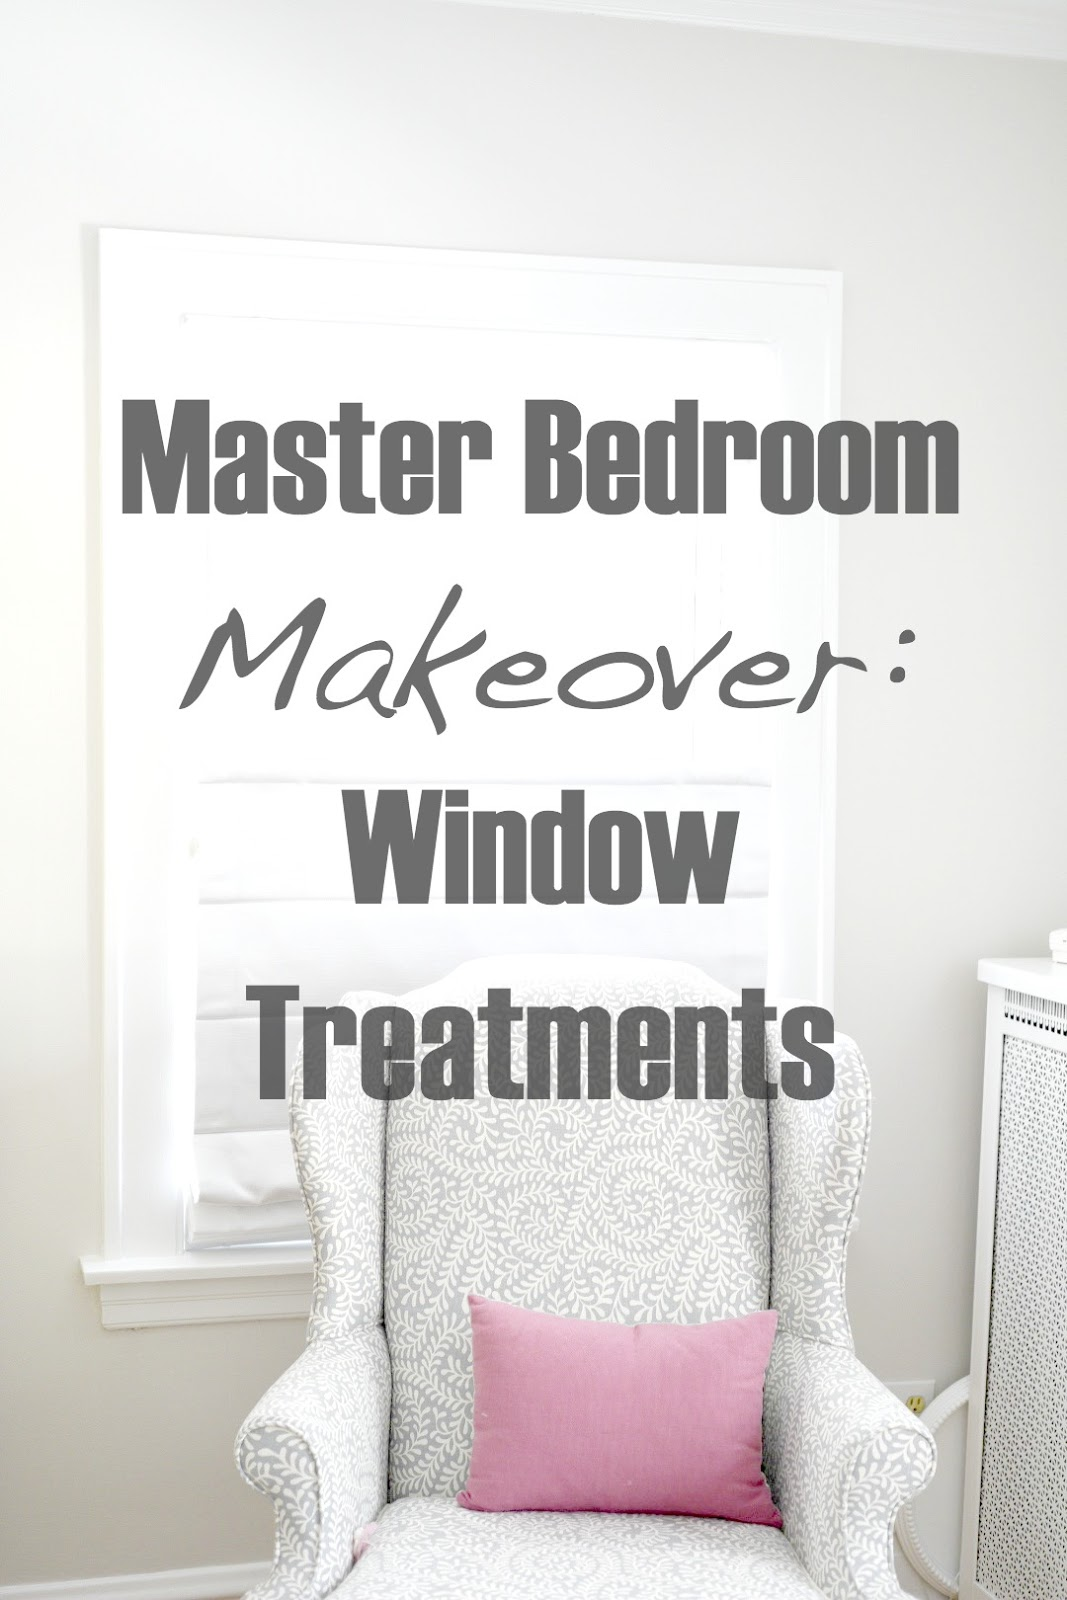 Master Bedroom Window Treatments By Graber